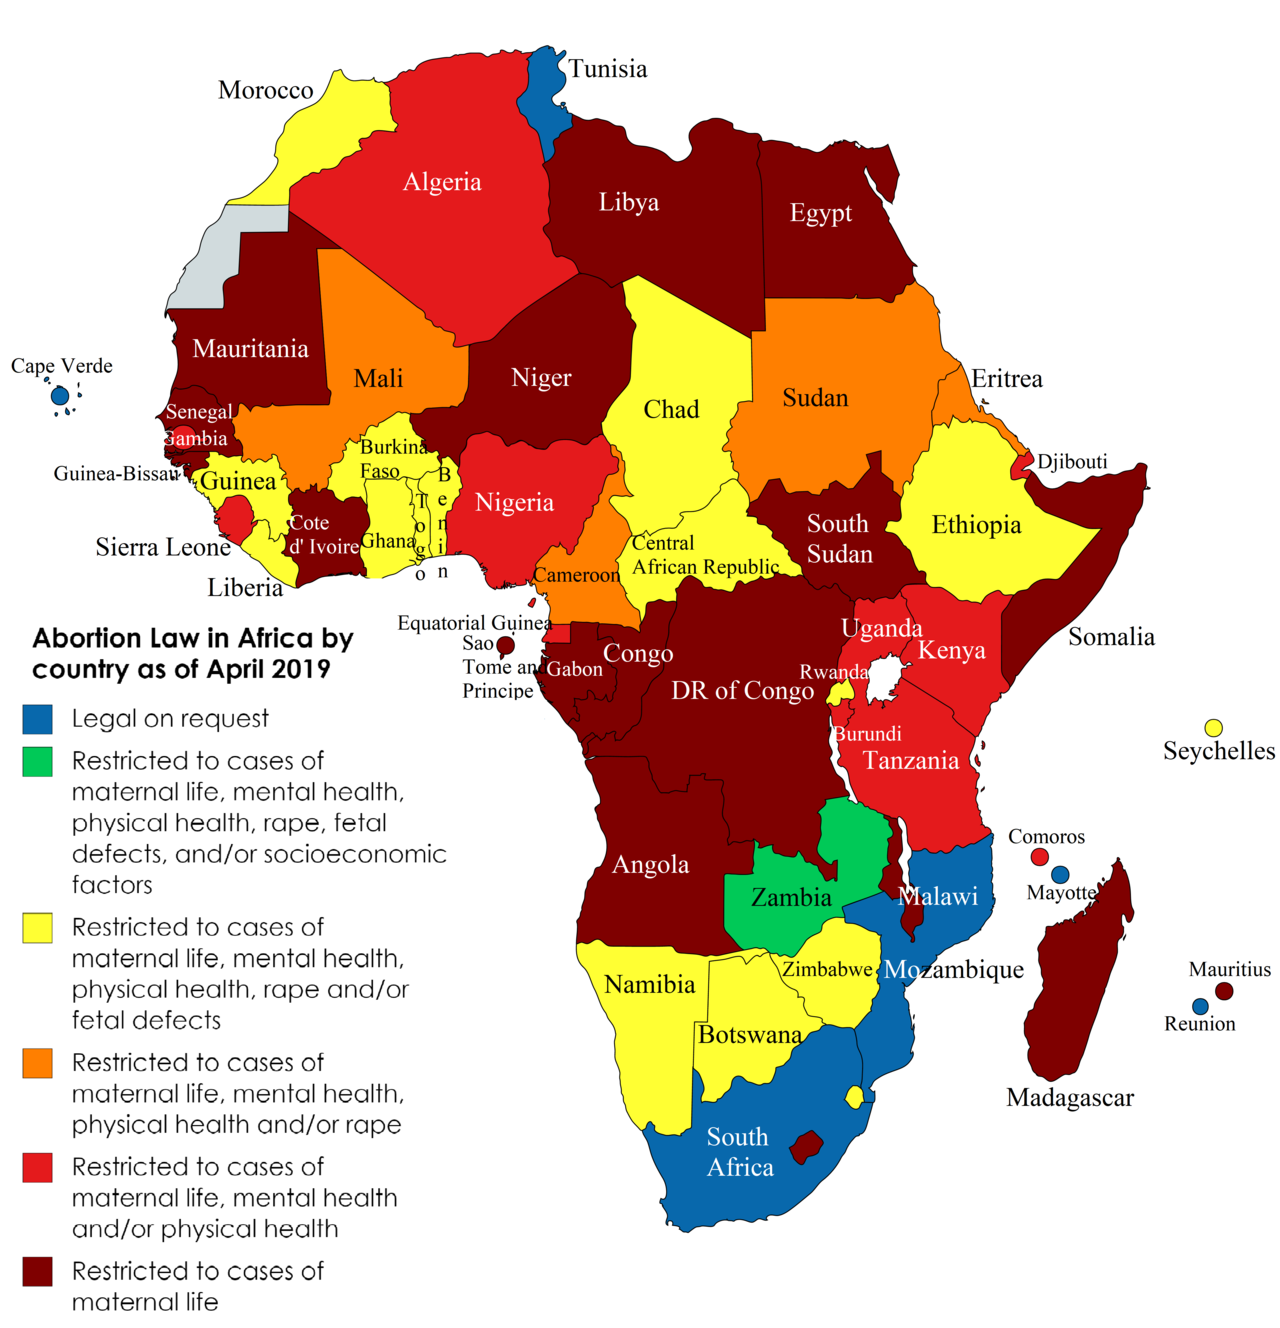 Abortion Law in Africa by country as of April 2019